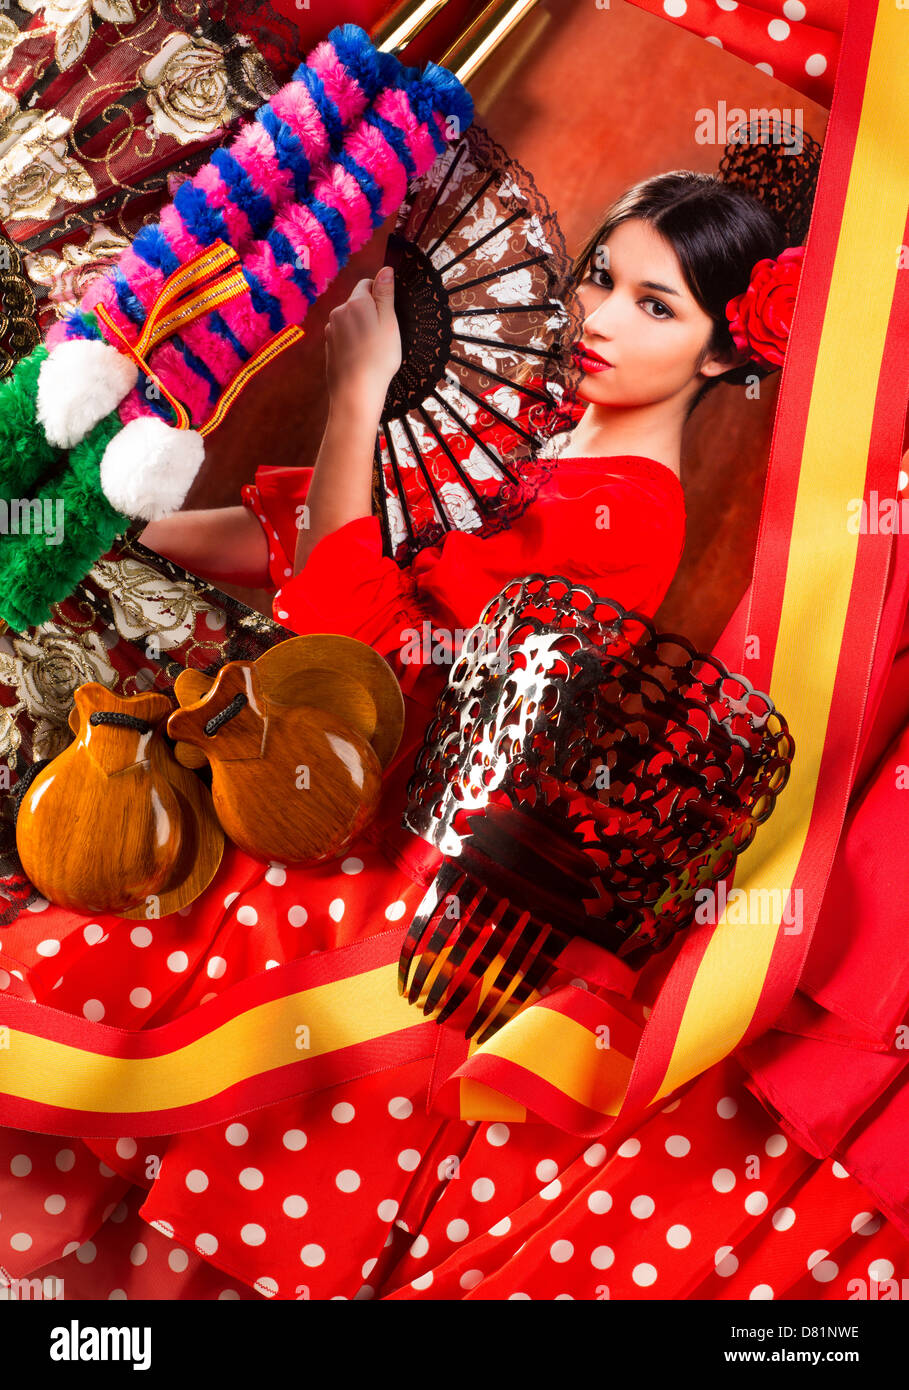 Flamenco woman with bullfighter and typical Spain Espana elements like castanets fan and comb - Stock Image